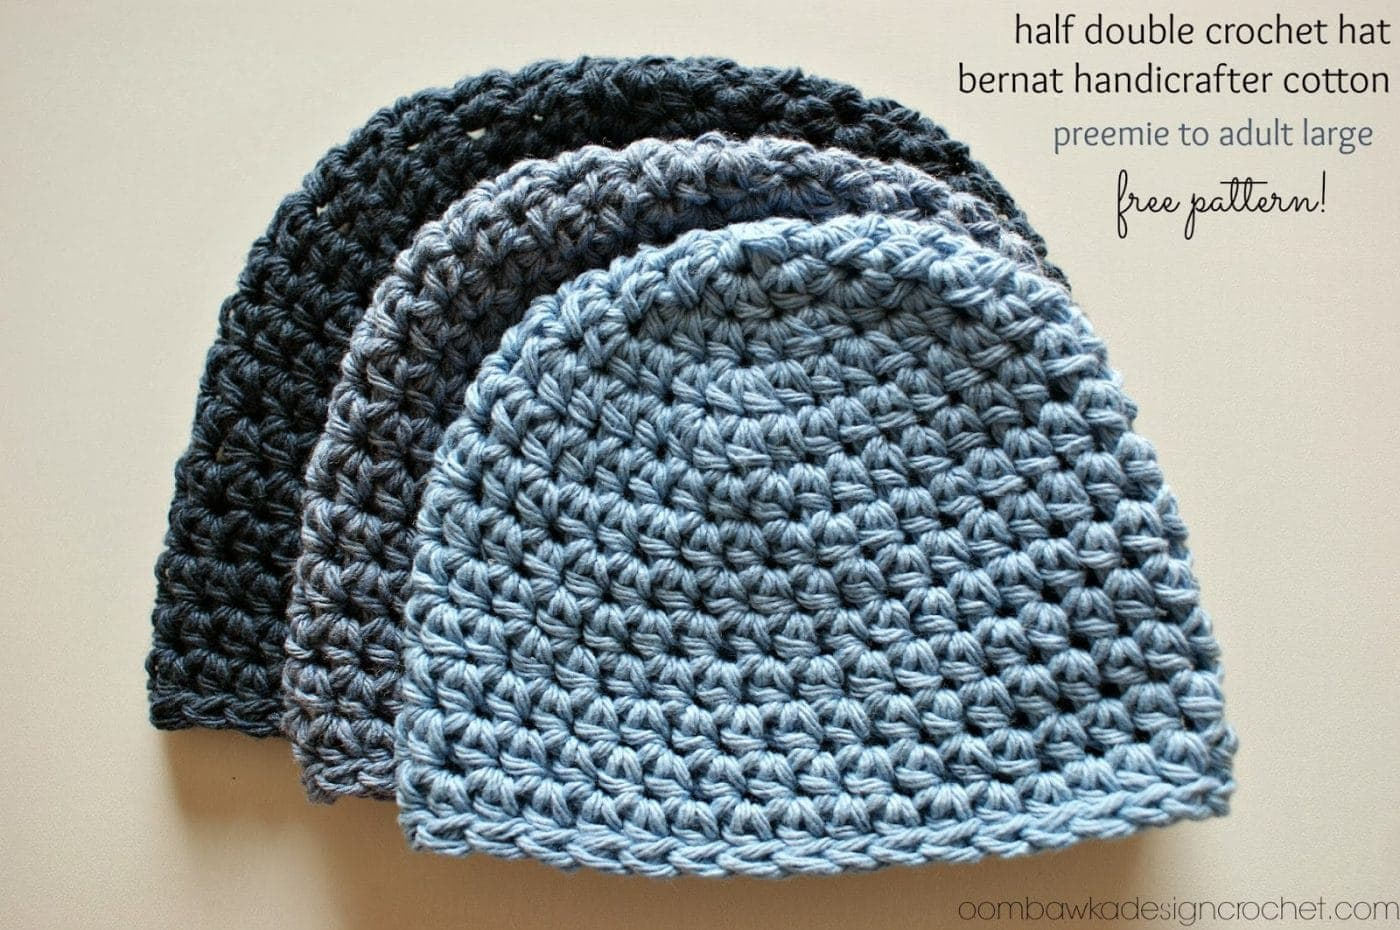 Free Crochet Patterns For Hats : ... Double Crochet Hat Pattern #2 Free Pattern ? Oombawka Design Crochet